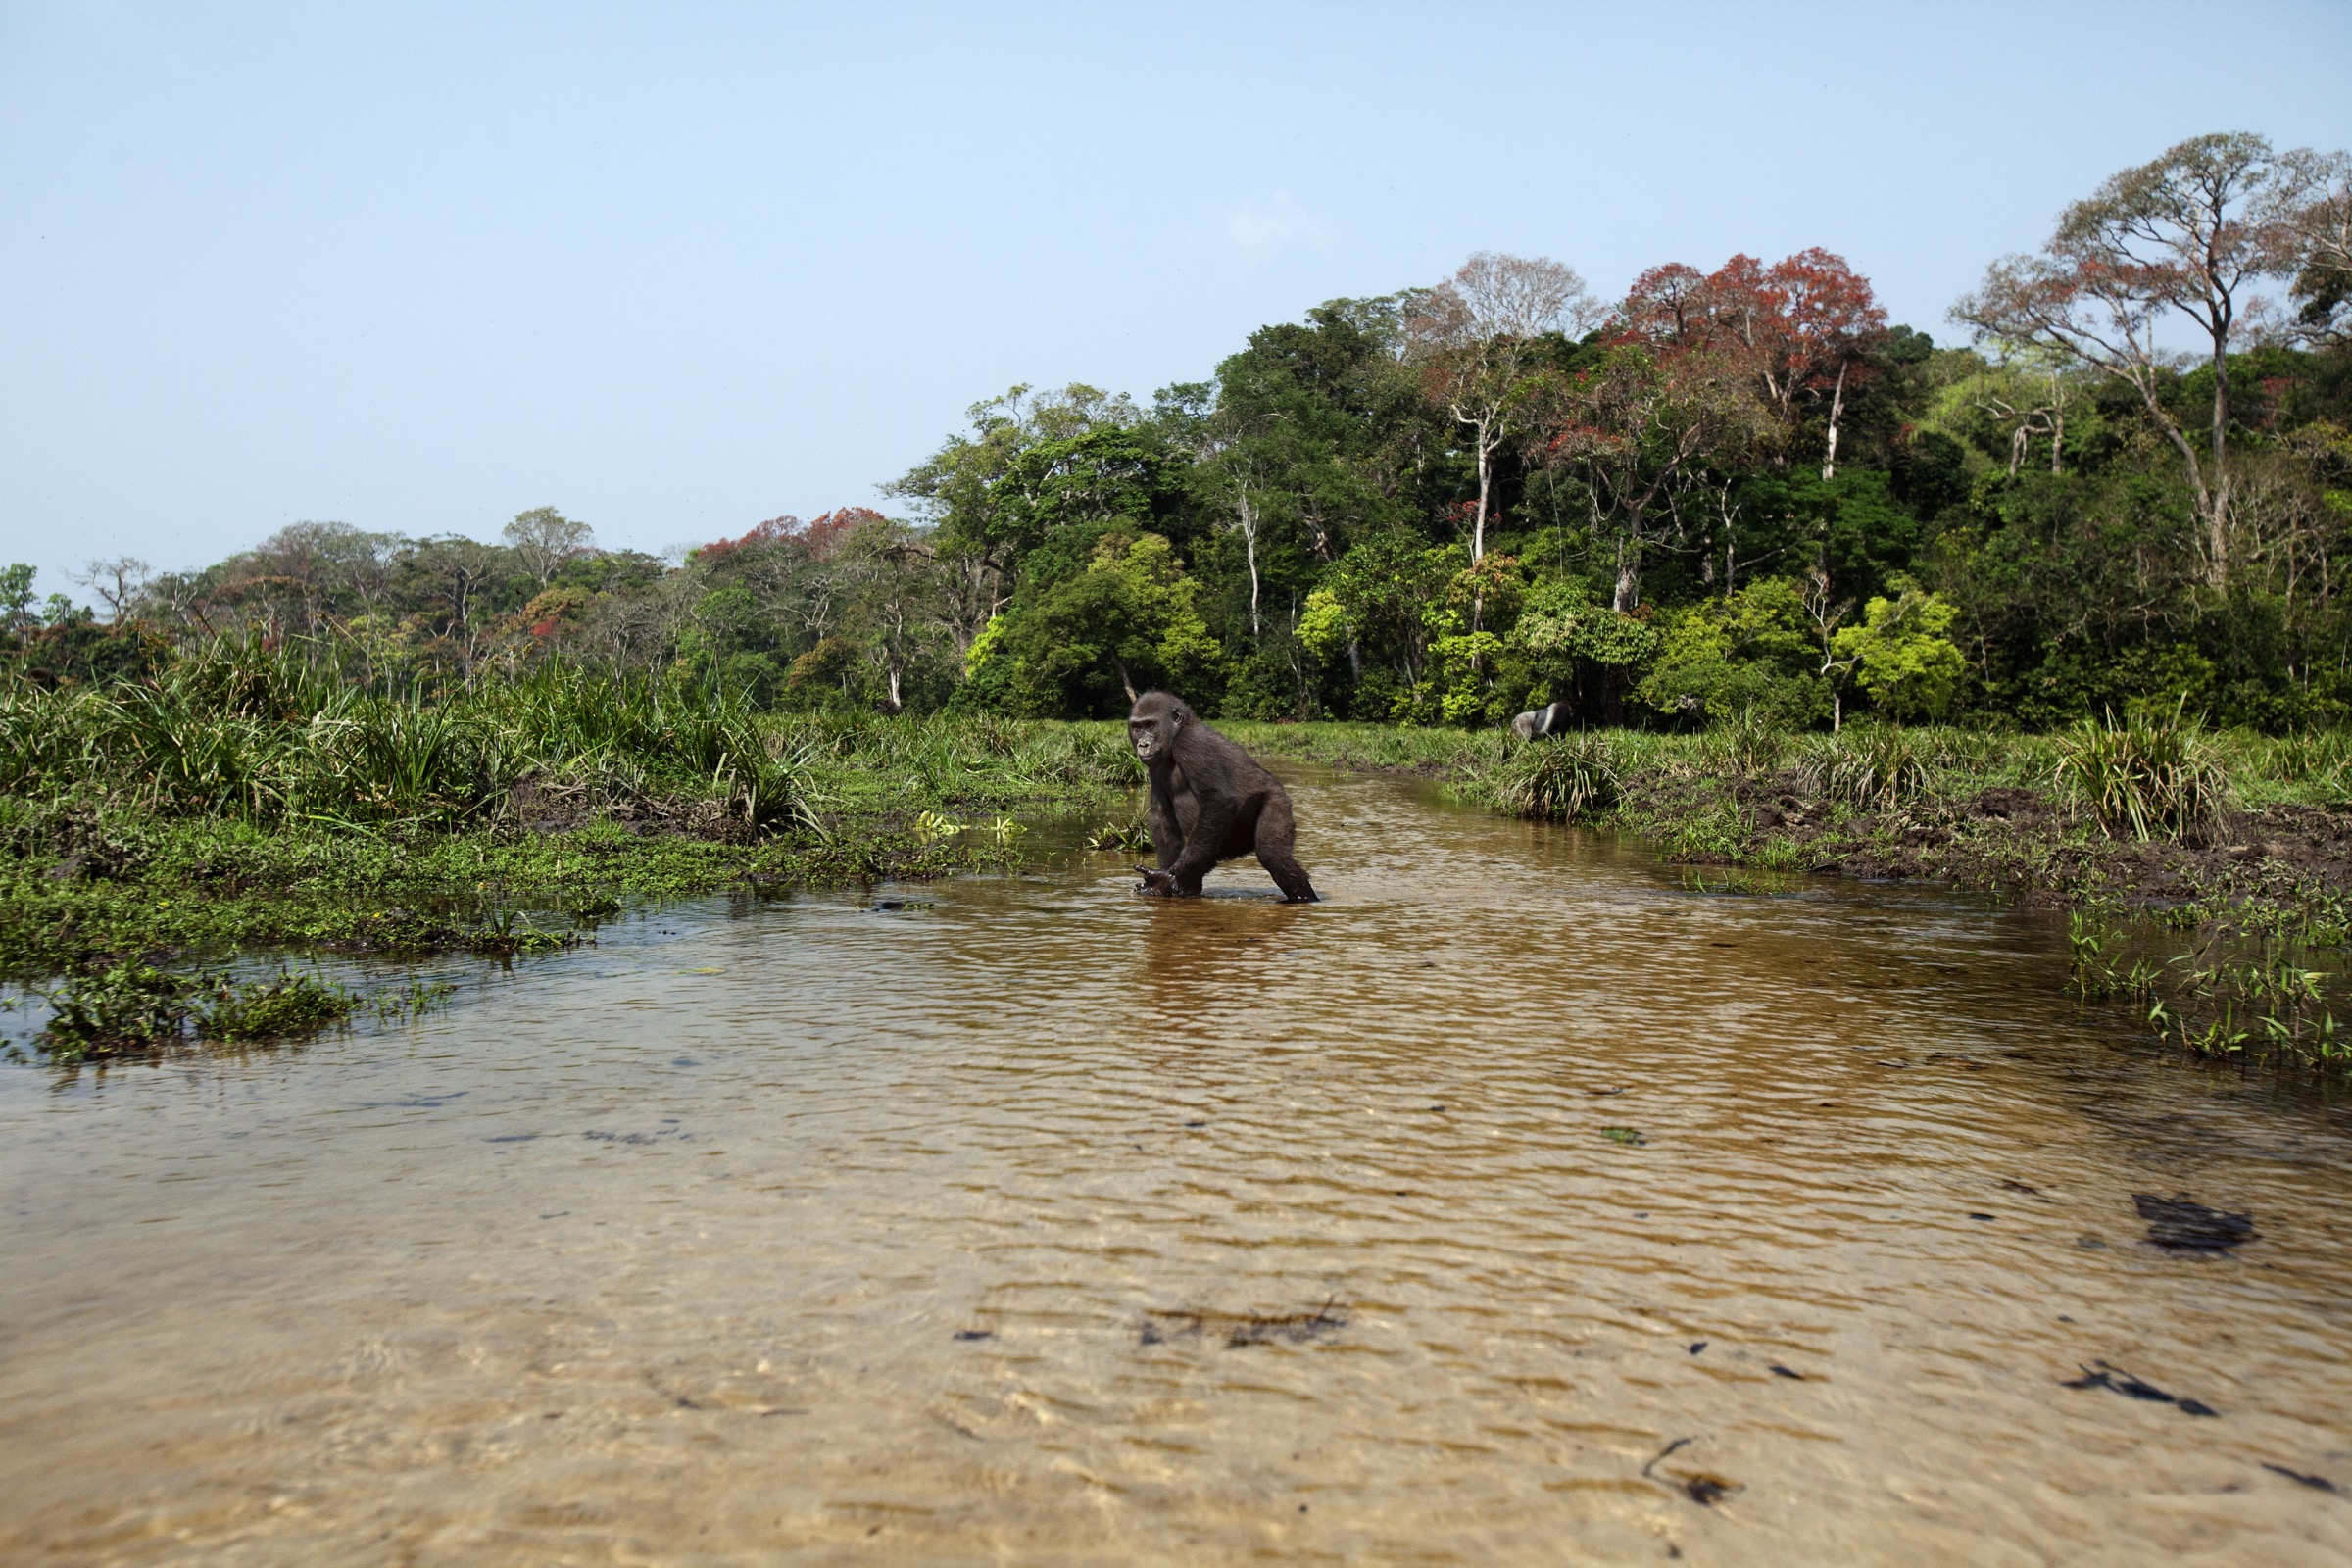 Western lowland gorilla (Gorilla gorilla gorilla) male, Tembo, age 4, crossed a river in Bai Hokou, Dzanga Sangha Special Dense Forest Reserve, Central African Republic.